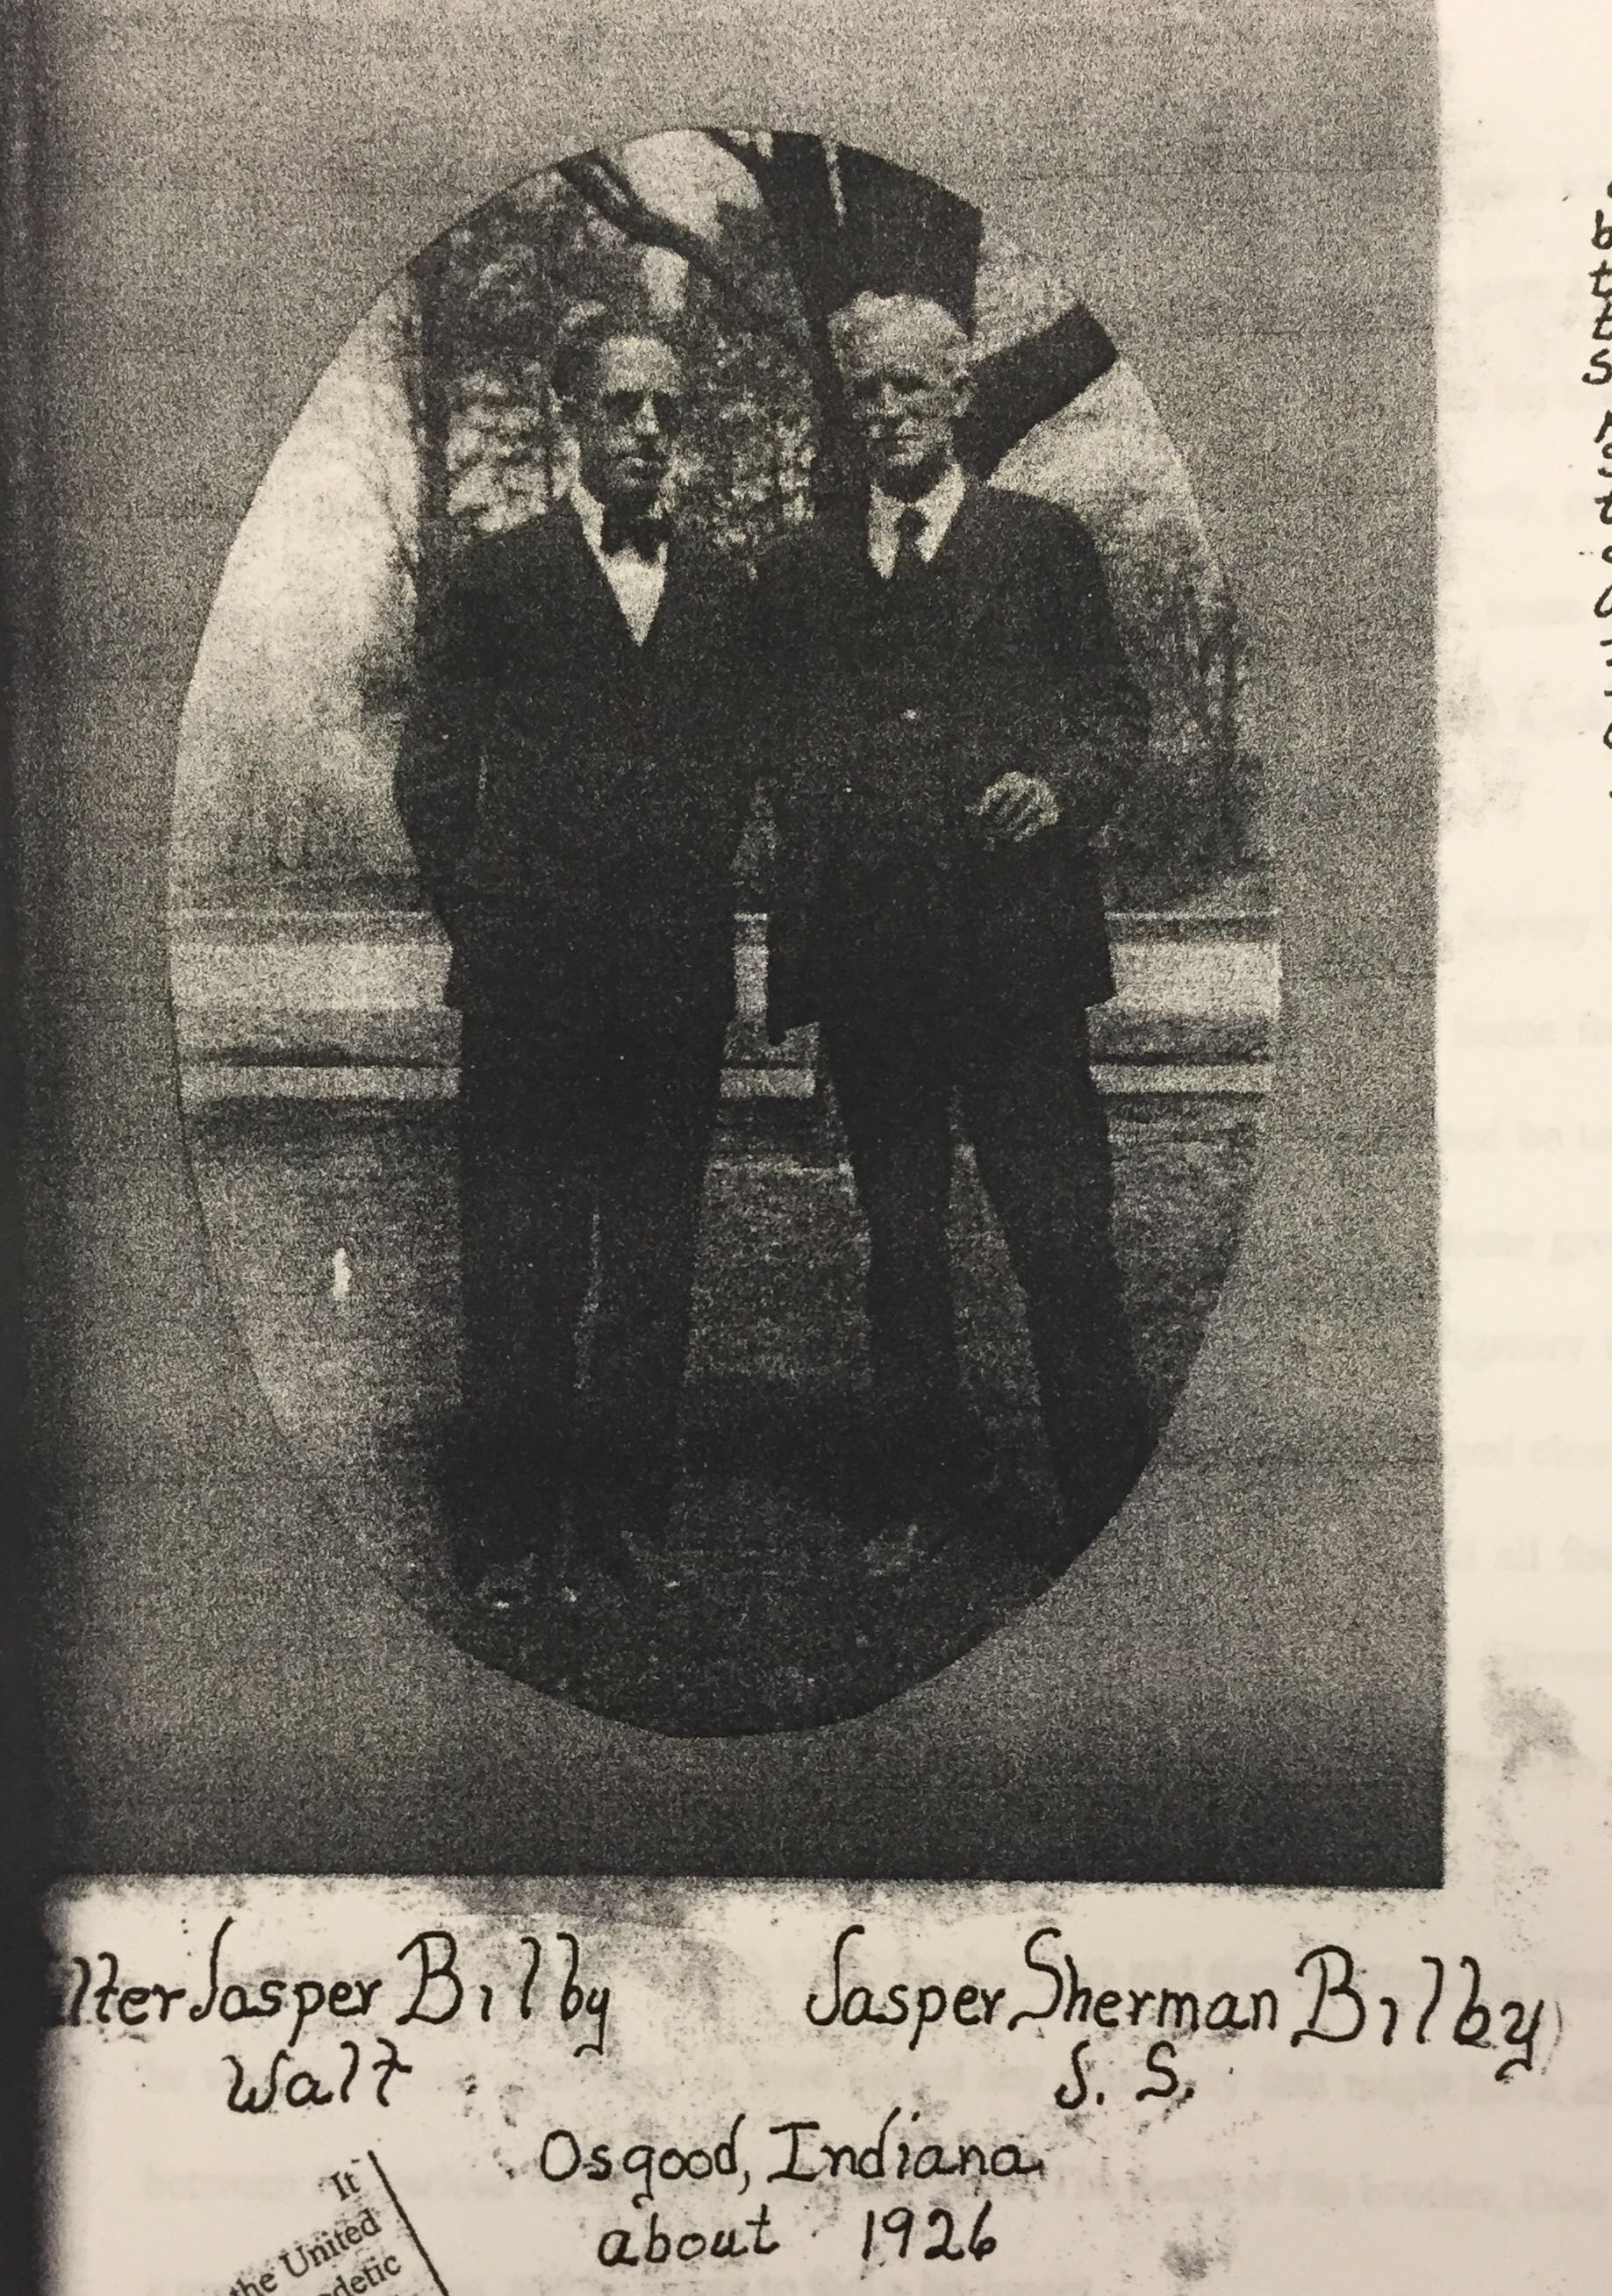 Jasper Sherman (right) with his son and fellow surveyor Walter J. Bilby (left), circa 1926. Courtesy of Surveyor's Historical Society Collection.